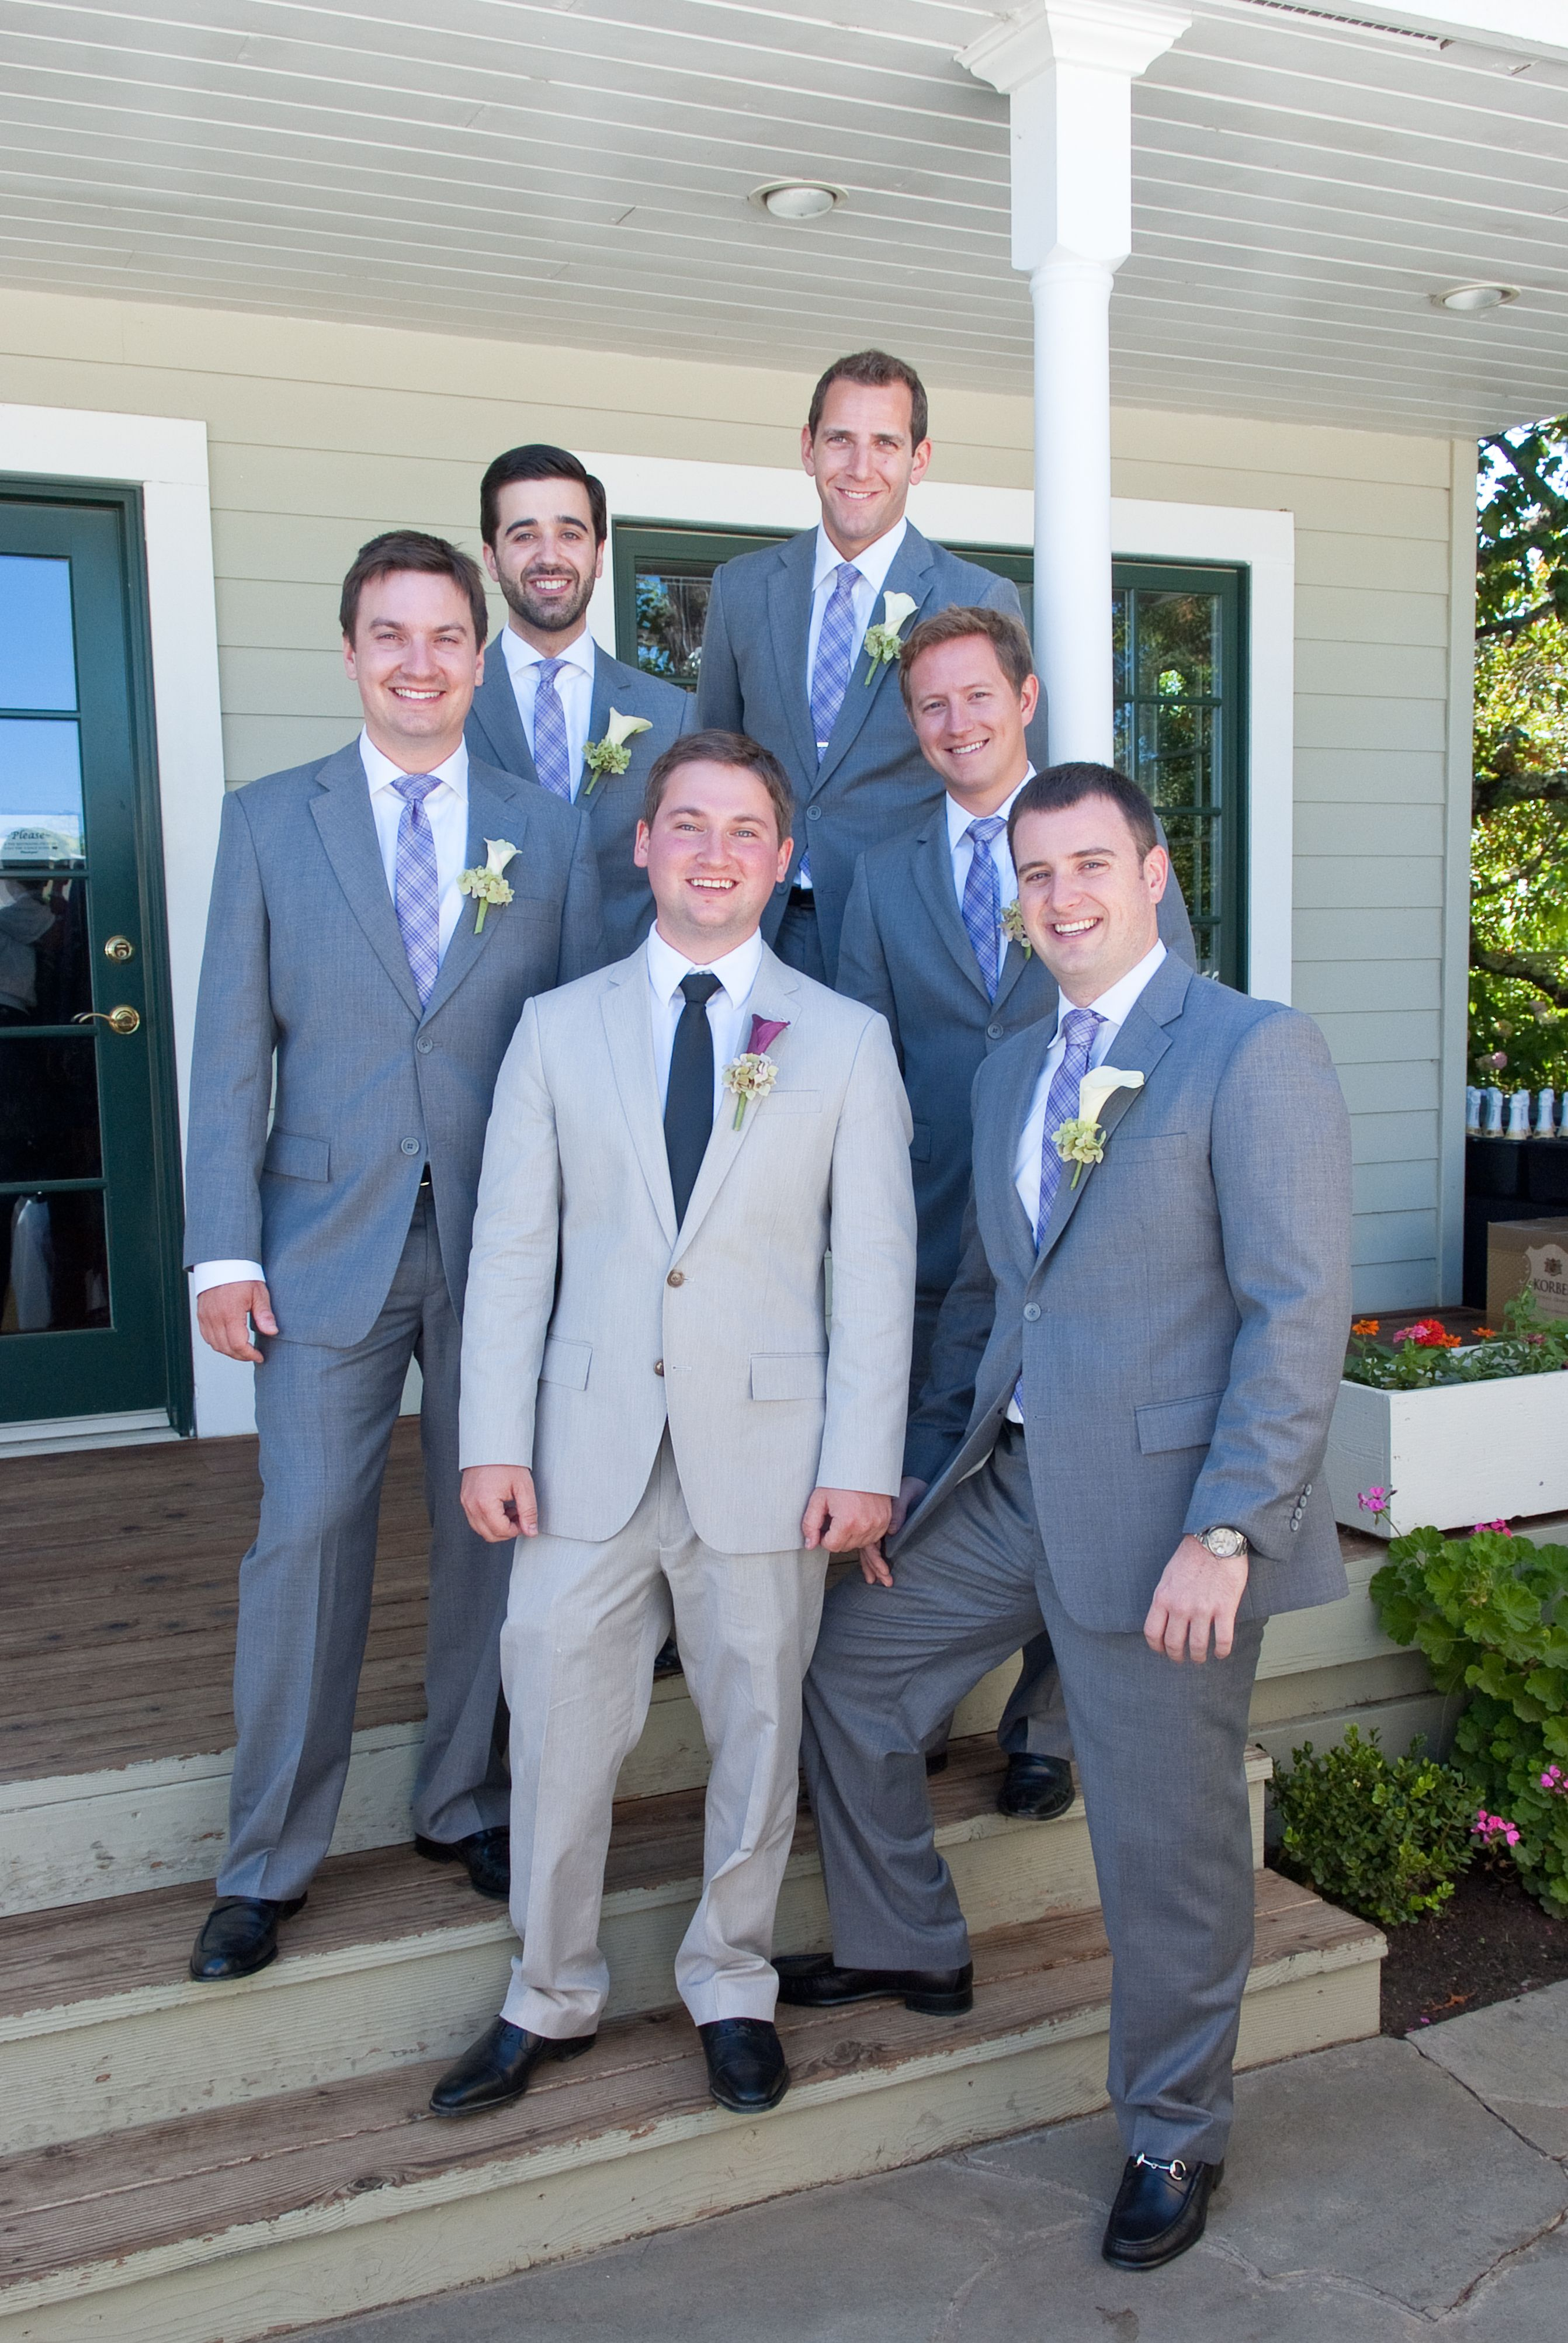 groomsmen in navy blue suits groom in grey - Google Search ...